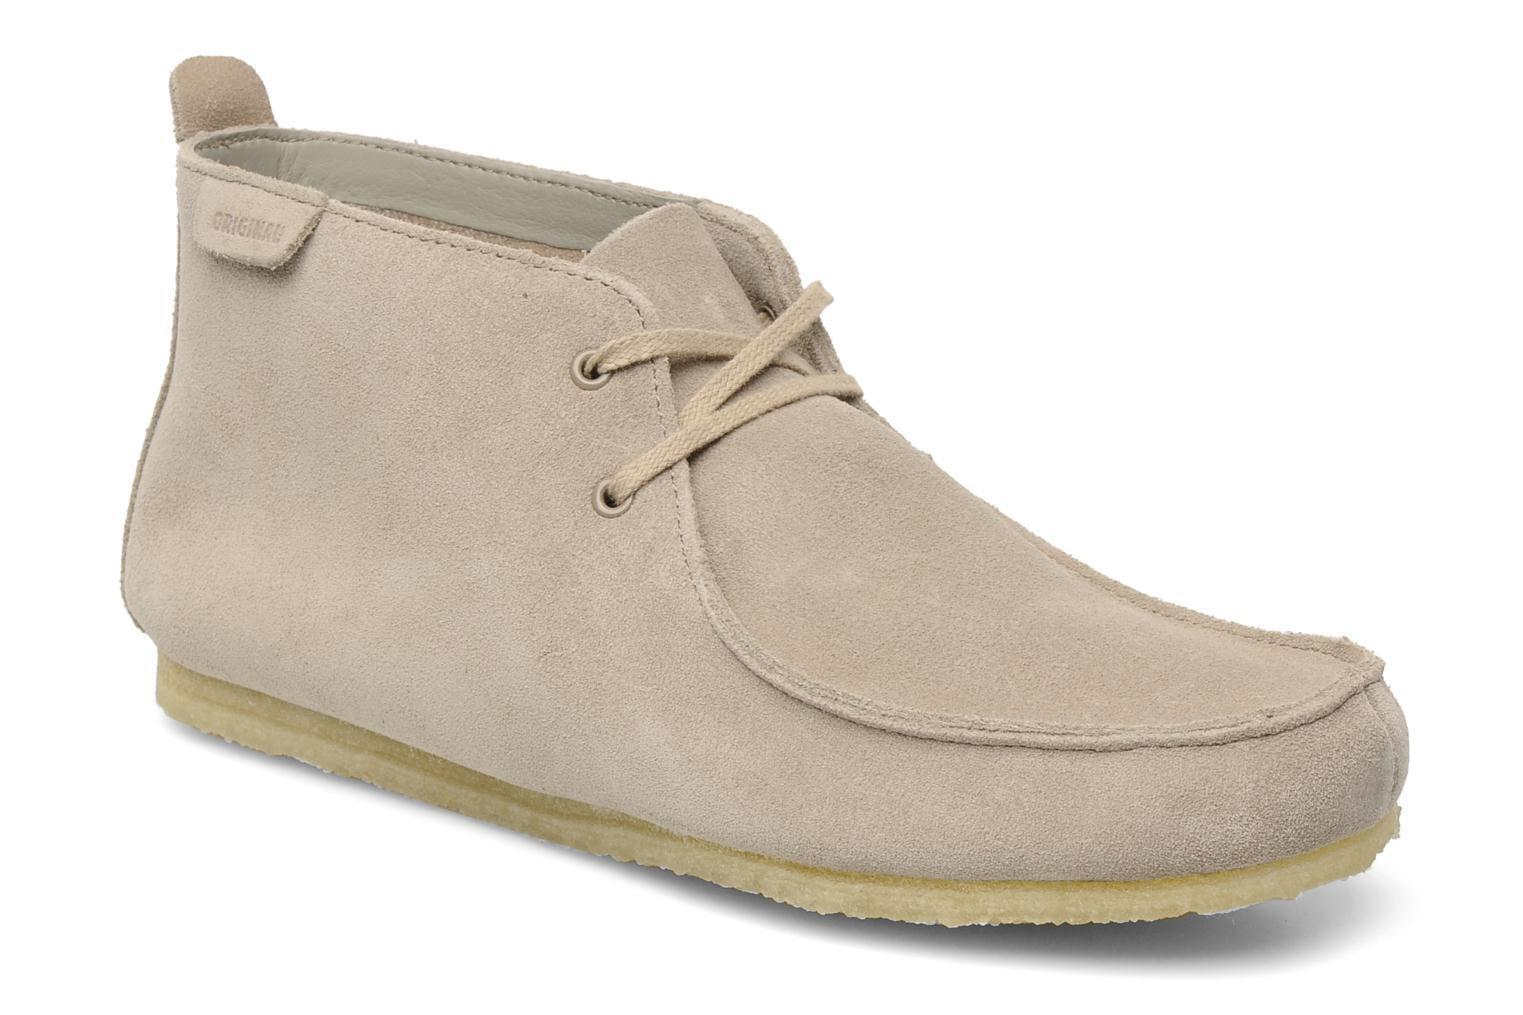 Clarks Originals Para Hombre  WALLABEES Suave     ante Color arena UK 6,7,8,10,11 G 1dc602